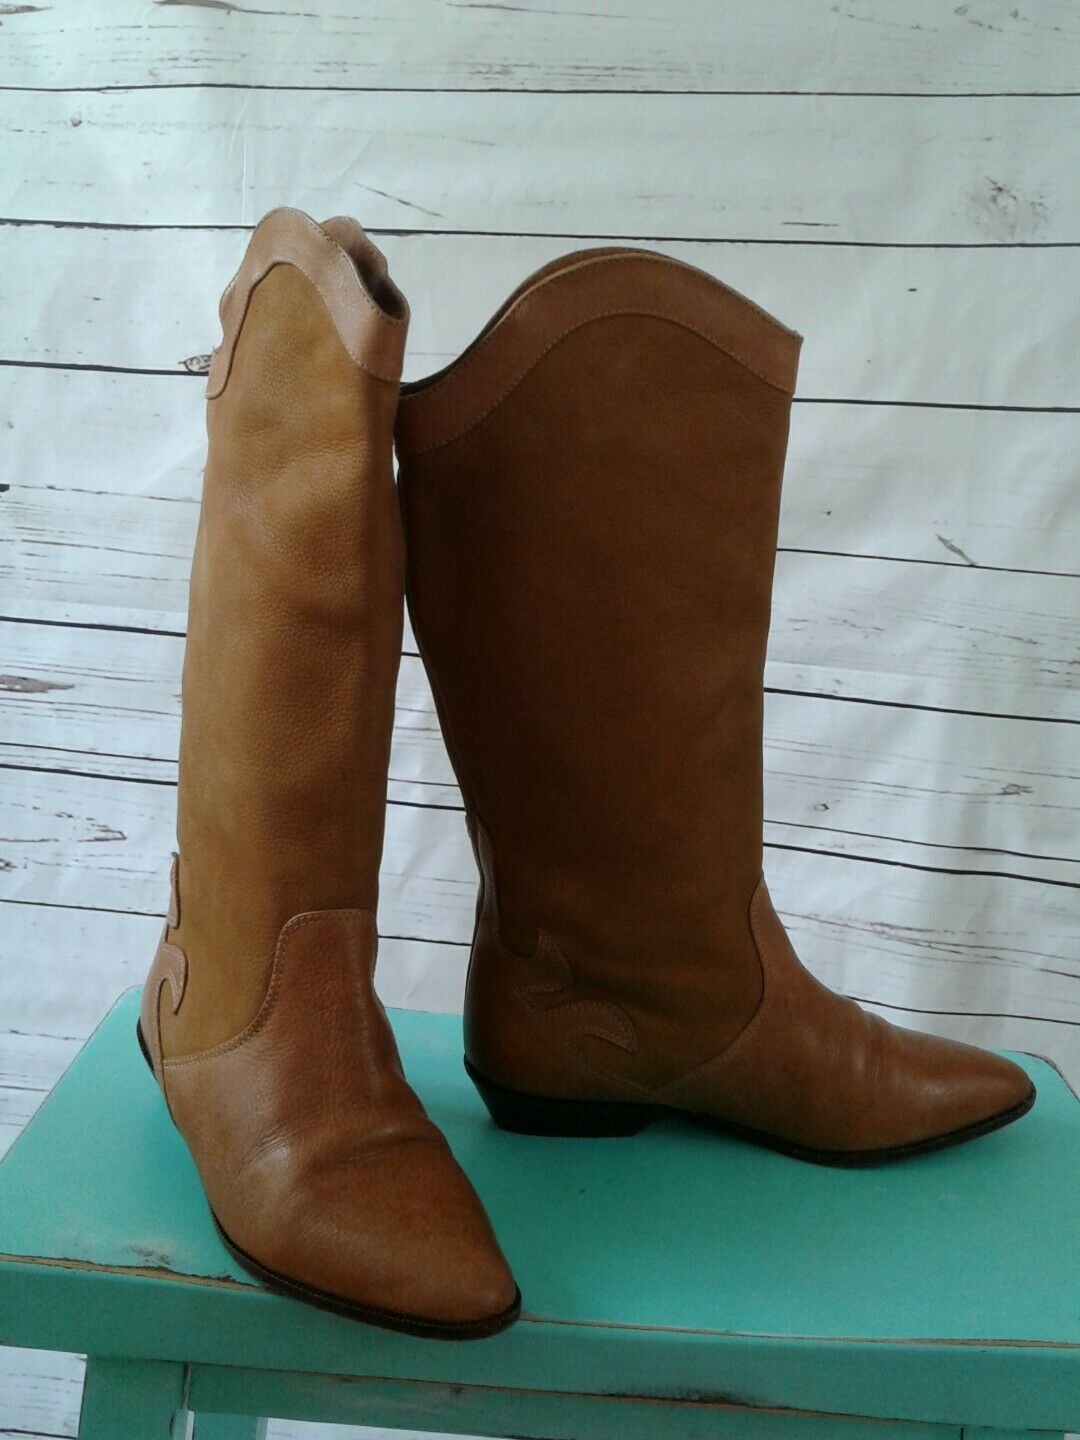 Mario Bruni Womens Boots Made in Italy Soft Leather Upper Leather Sole sz. 5 1/2